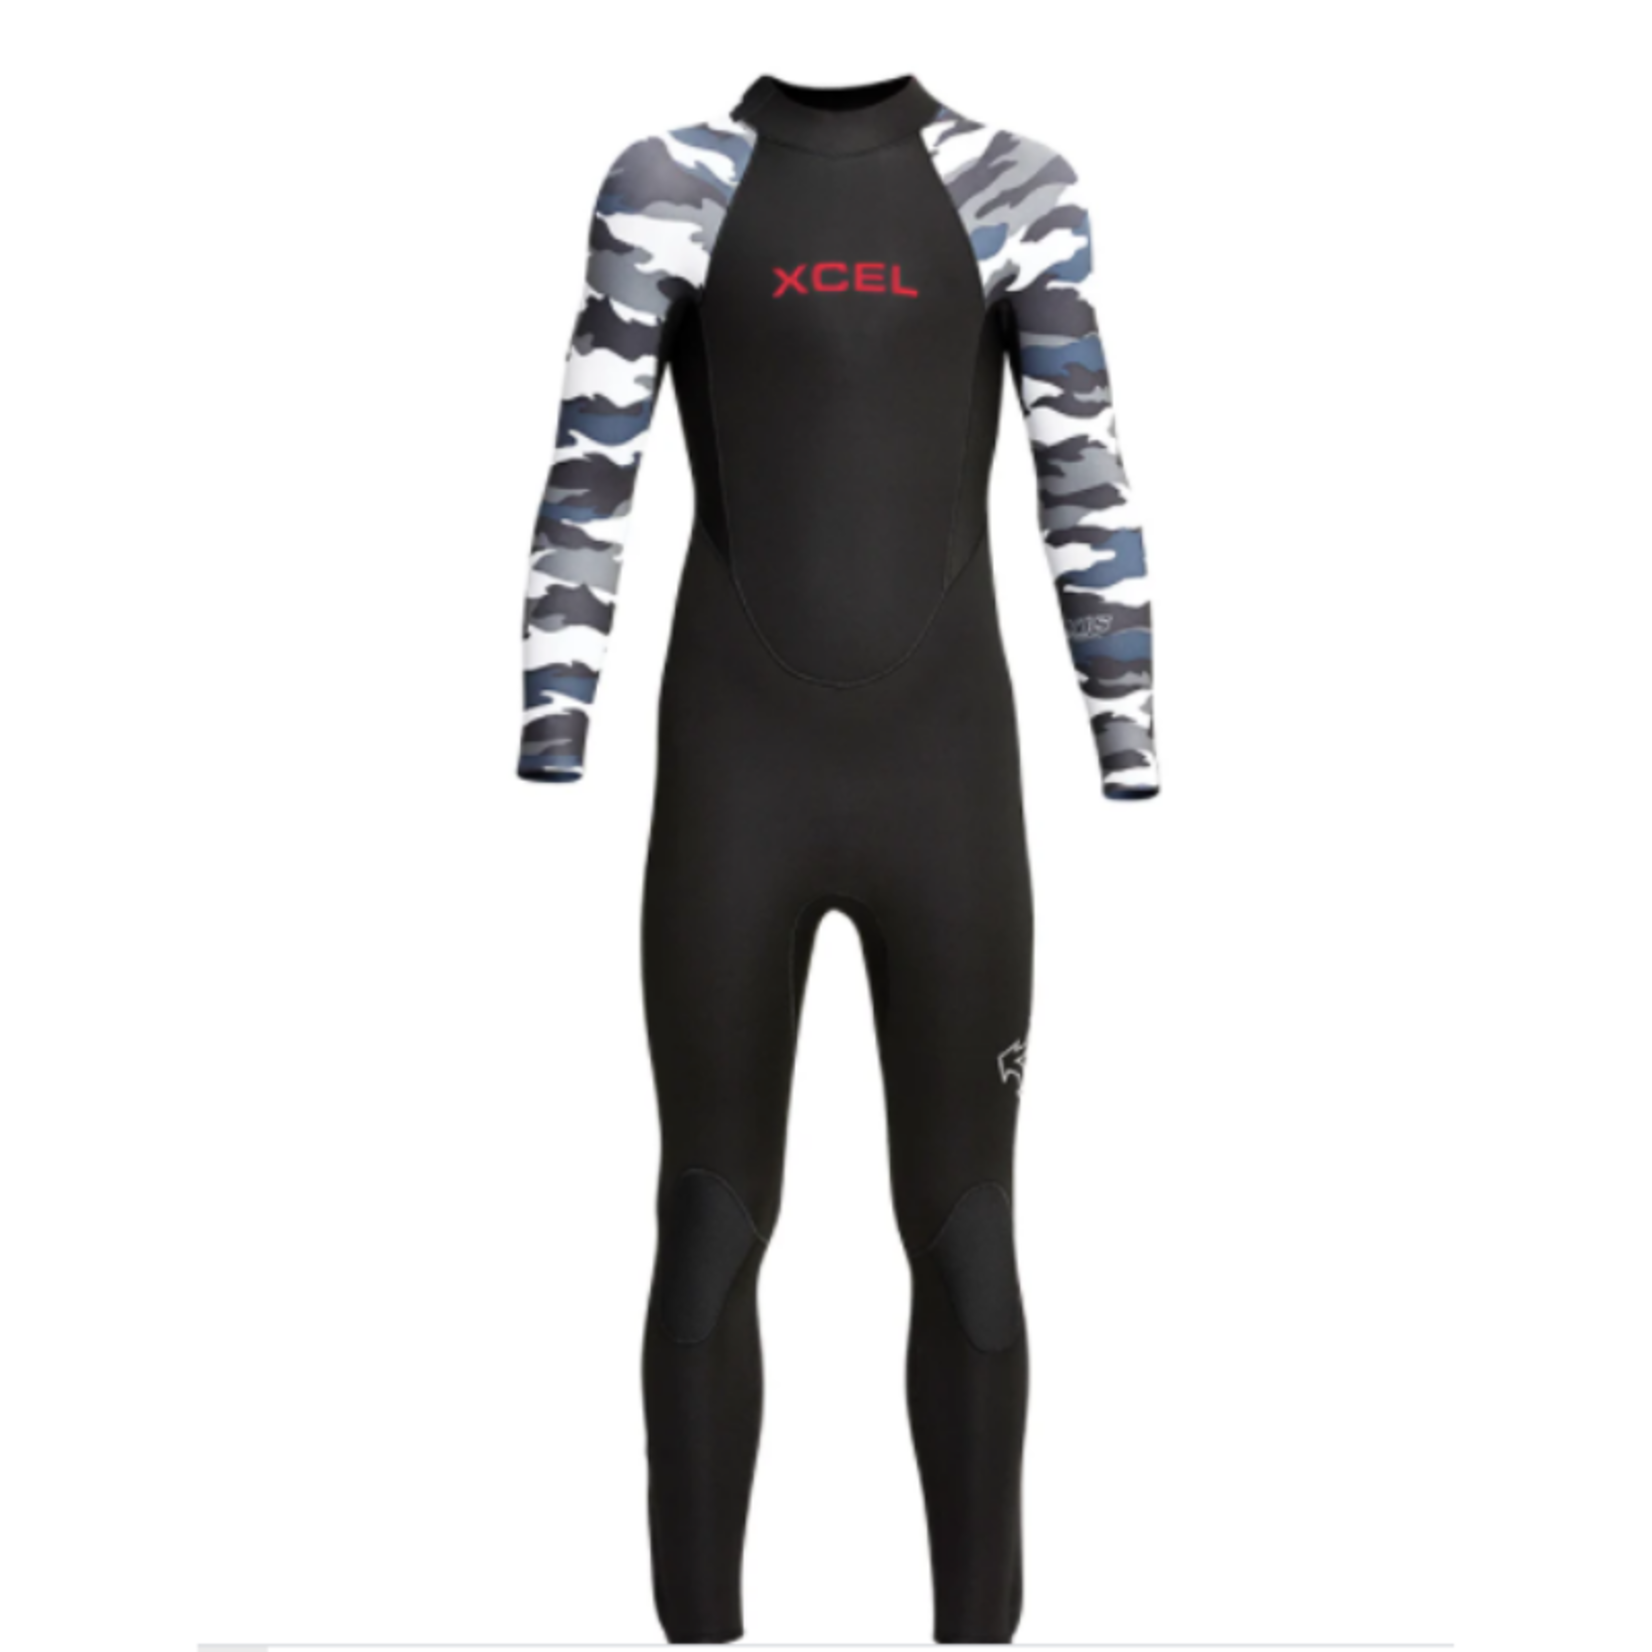 XCEL Wetsuits XCEL Youth Axis 4/3 Back Zip Wetsuit.